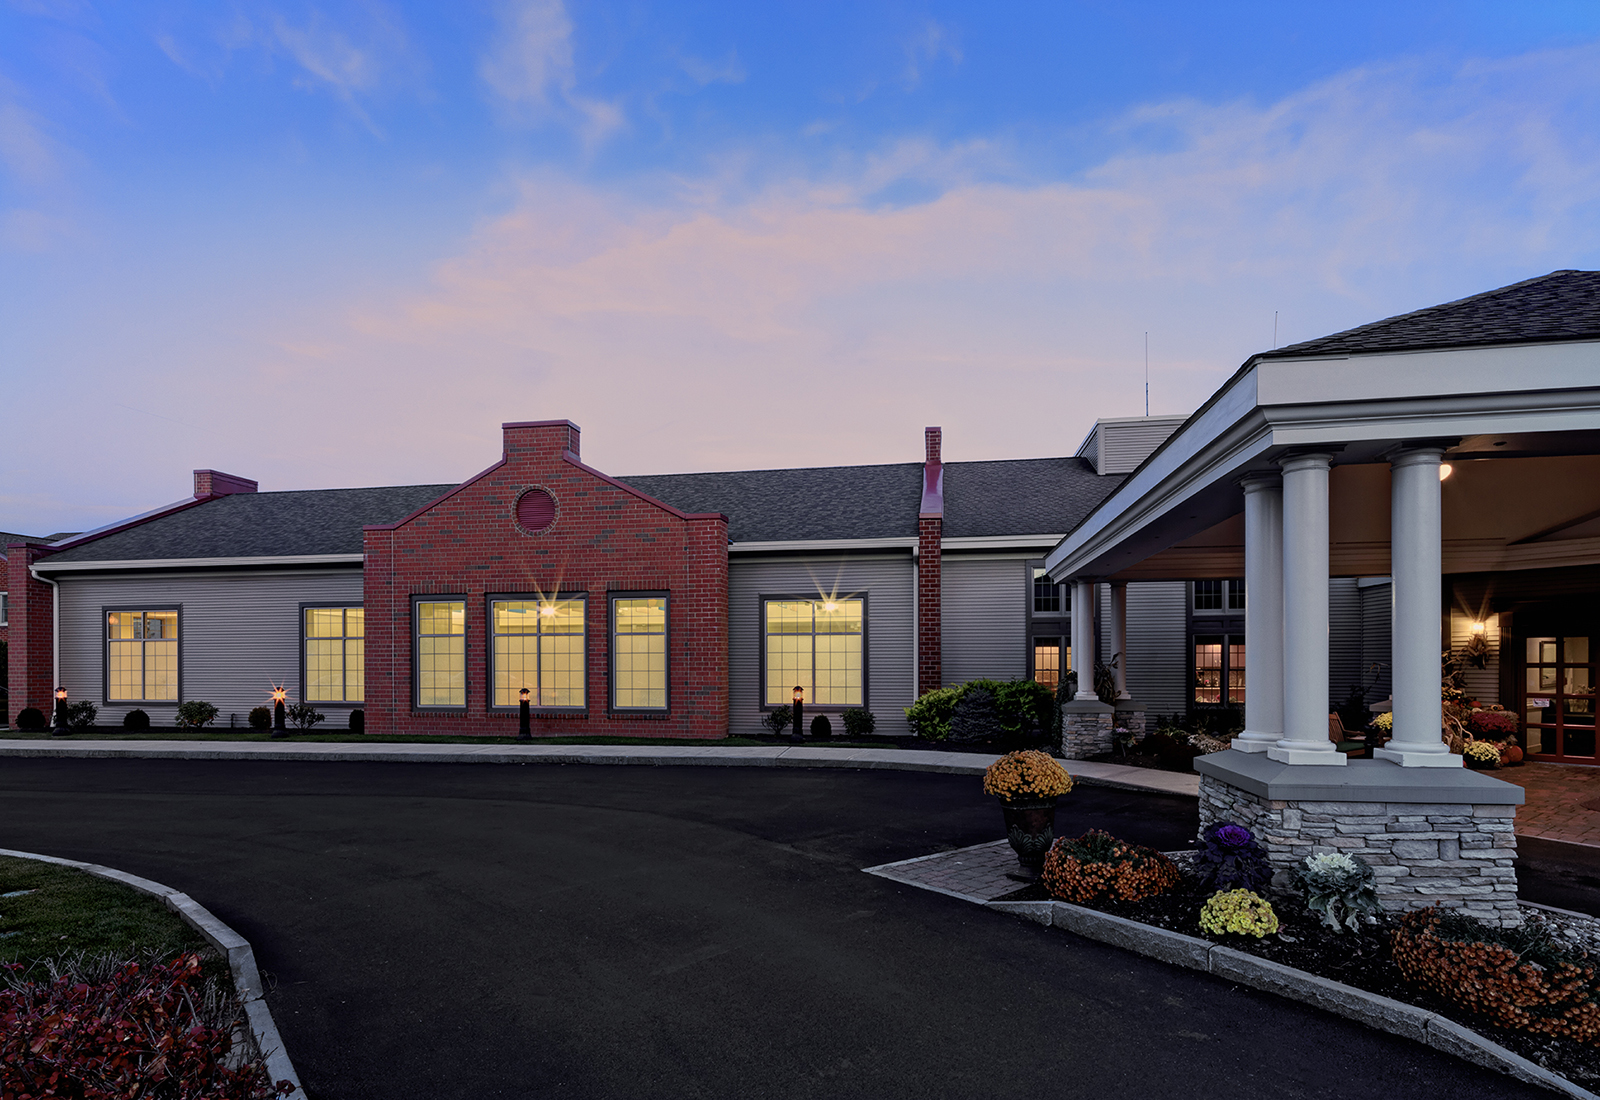 Beverwyck Retirement Community Constructor Project